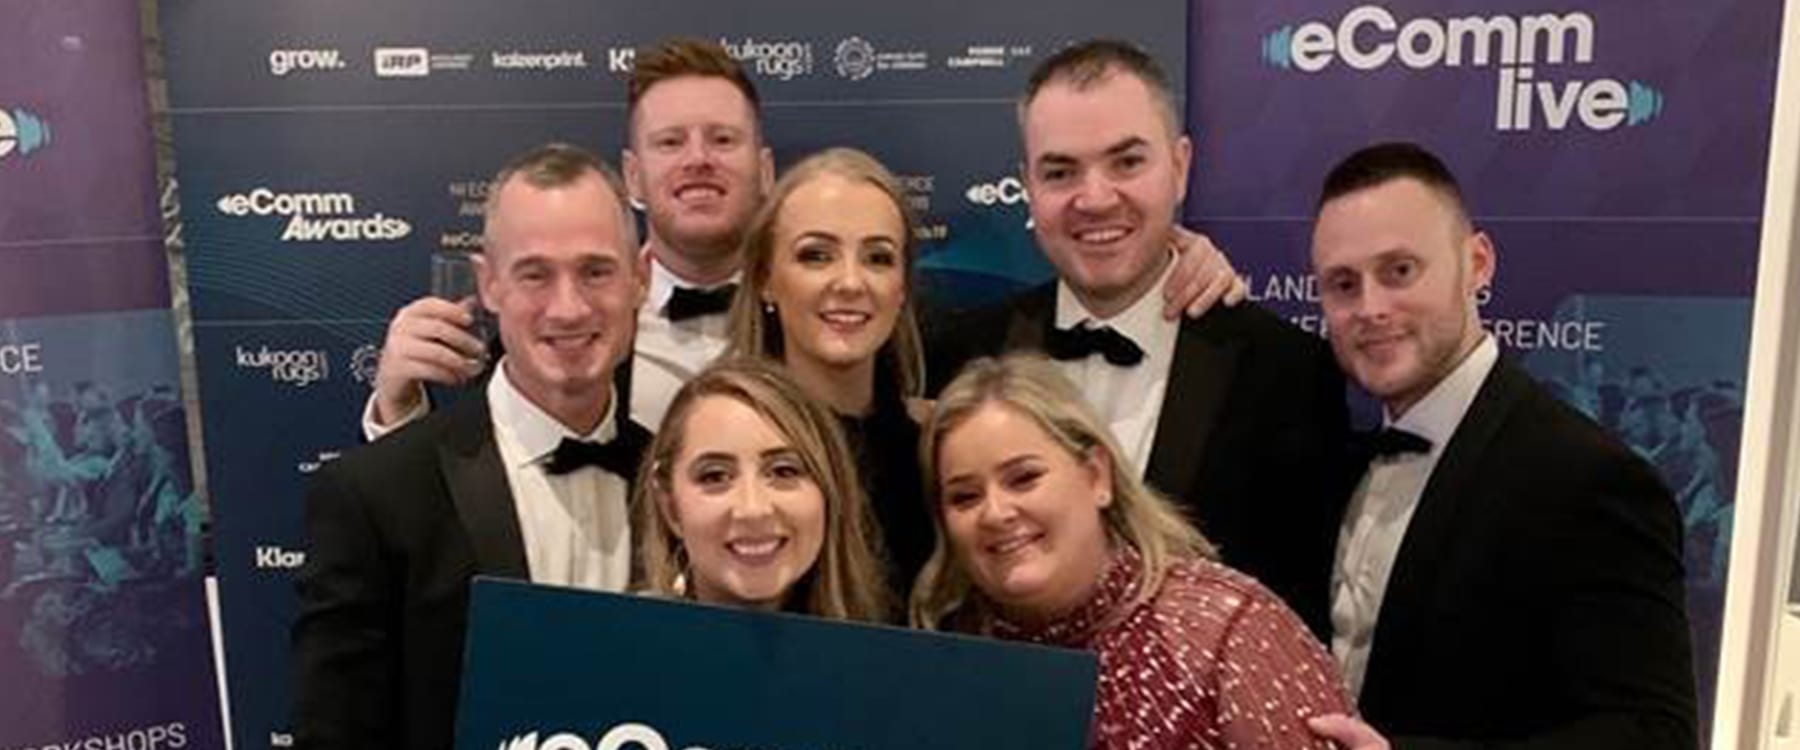 Inaugural NI eCommerce Awards 2019 Image